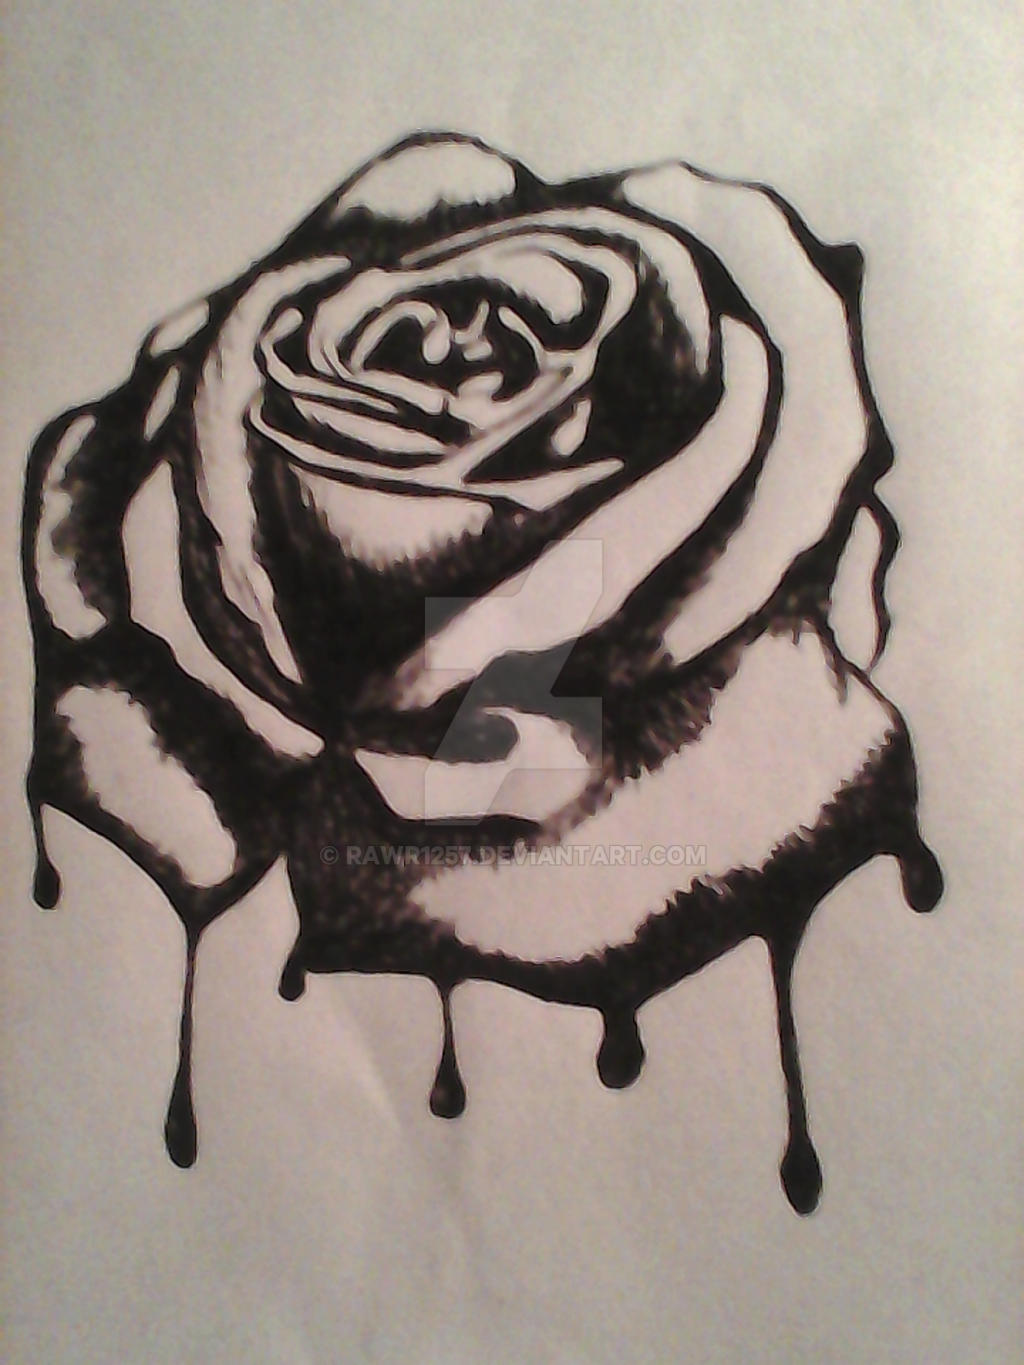 Dongetrabi black rose drawing bleeding images for How to draw a black and white rose